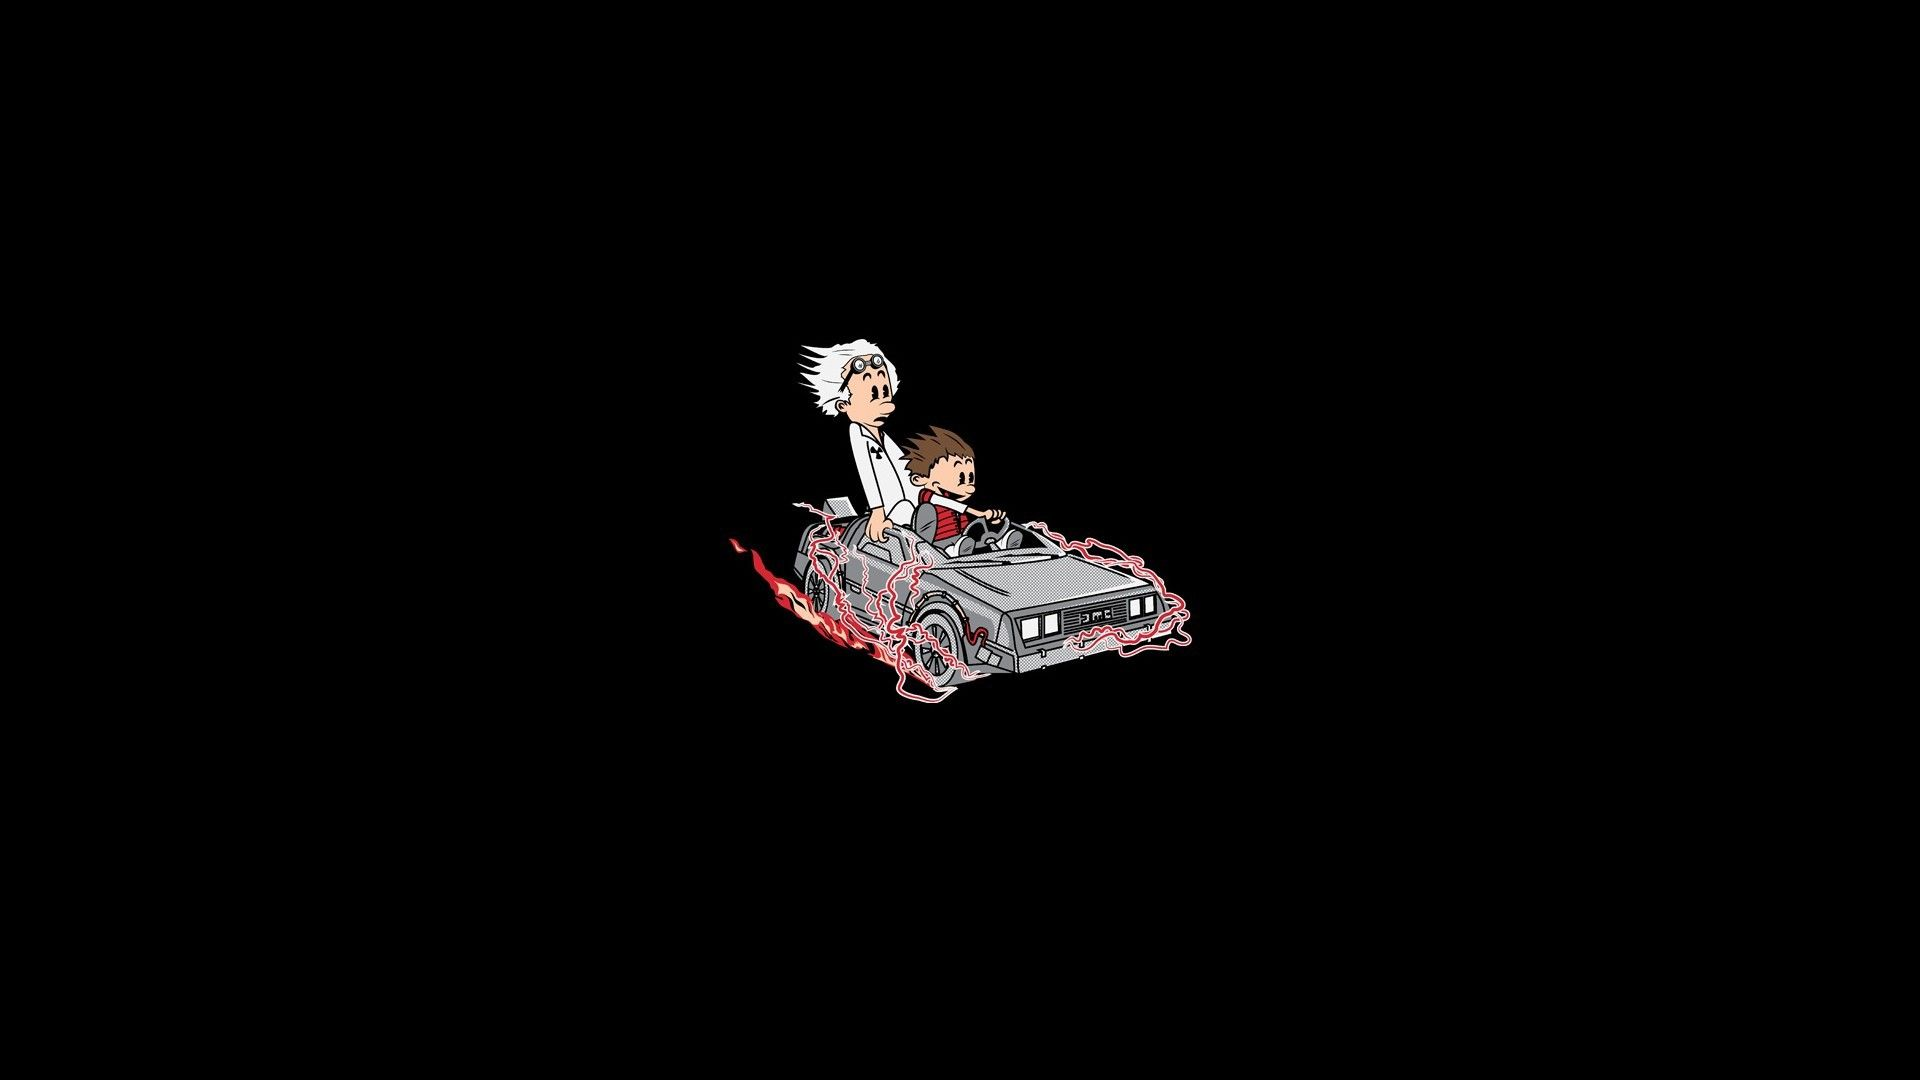 General 1920x1080 Back To The Future Calvin And Hobbes In